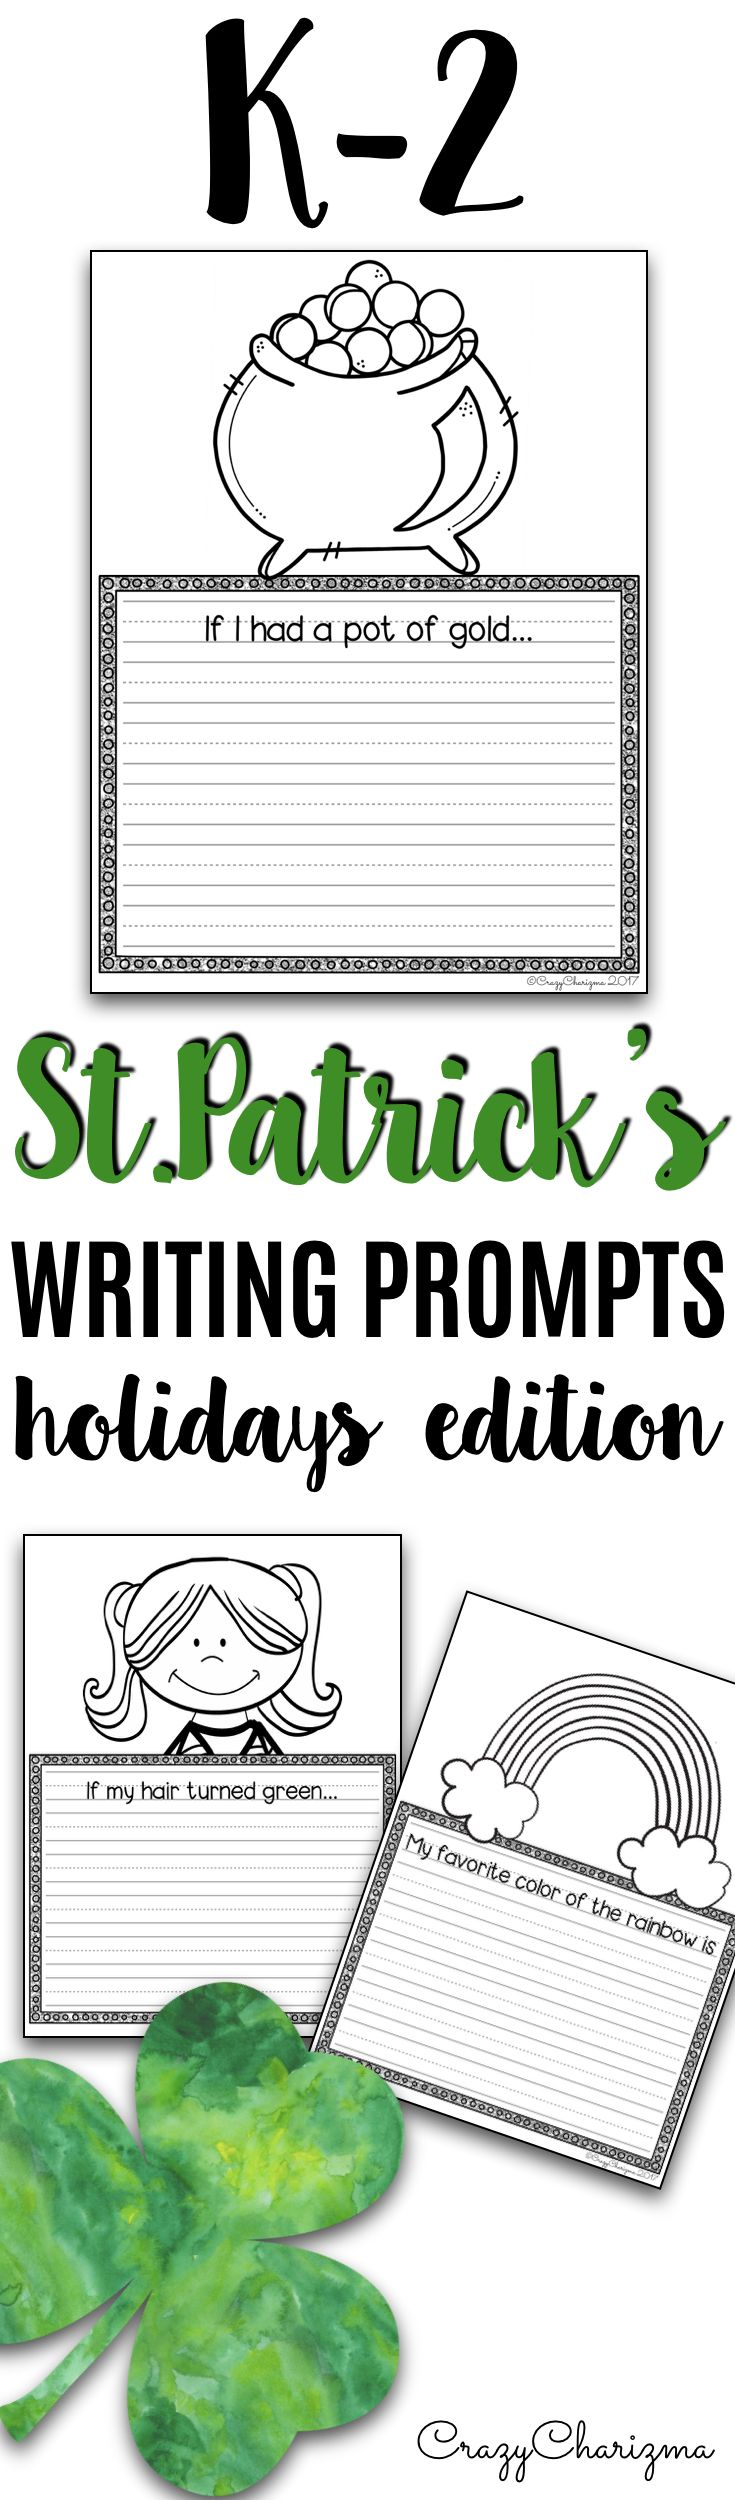 Are you ready for St Patrick's Day? Grab these writing prompts which are quick and will definitely engage your little kids. The set can help you take your students through the writing process and get them excited about it. This packet includes 20 writing prompts. | CrazyCharizma